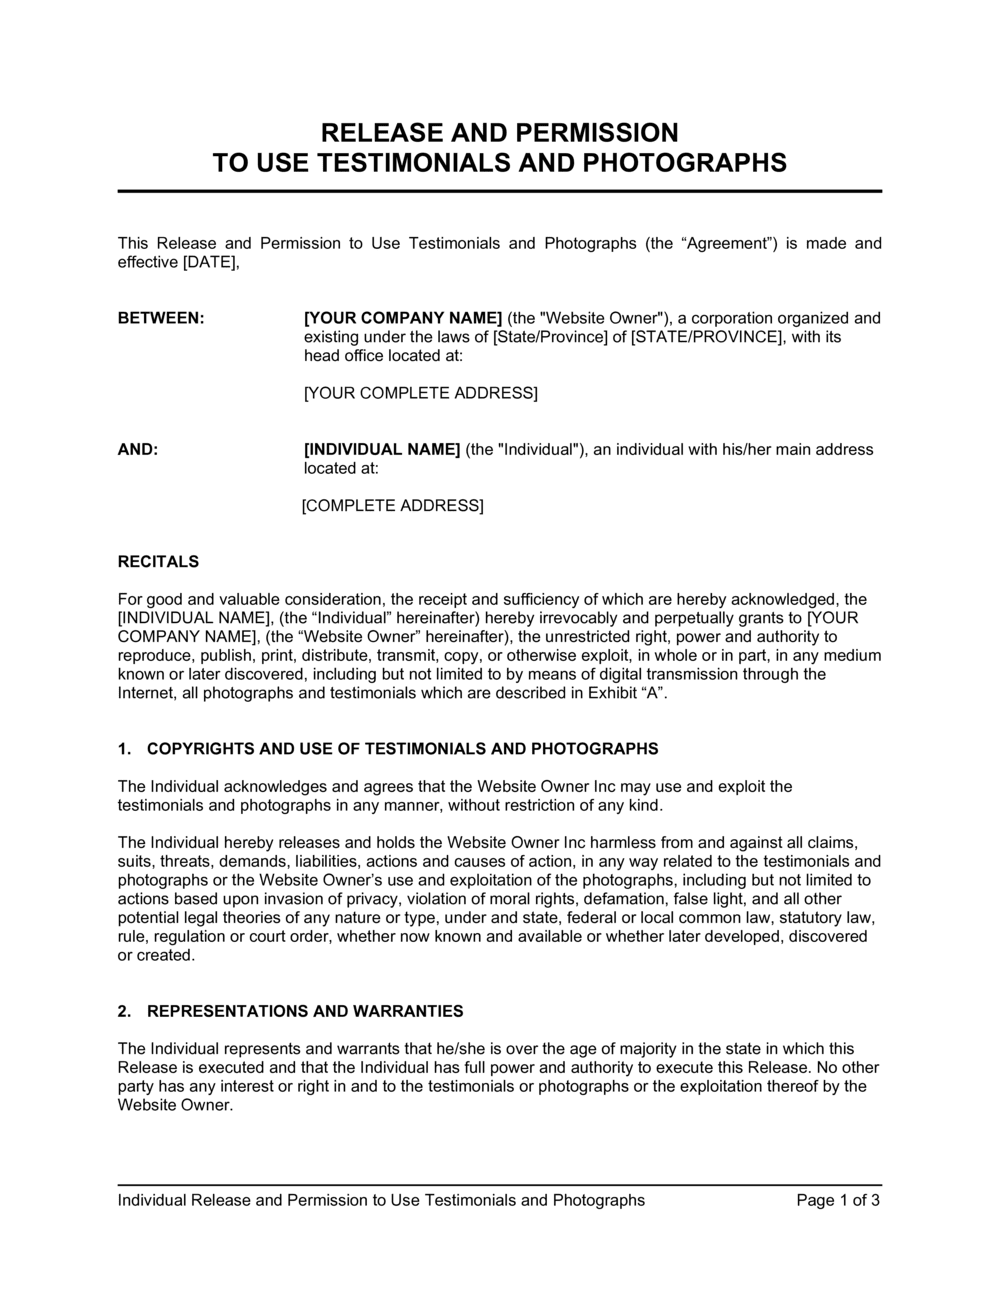 Business-in-a-Box's Release and Permission to Use Testimonial and Photographs Template